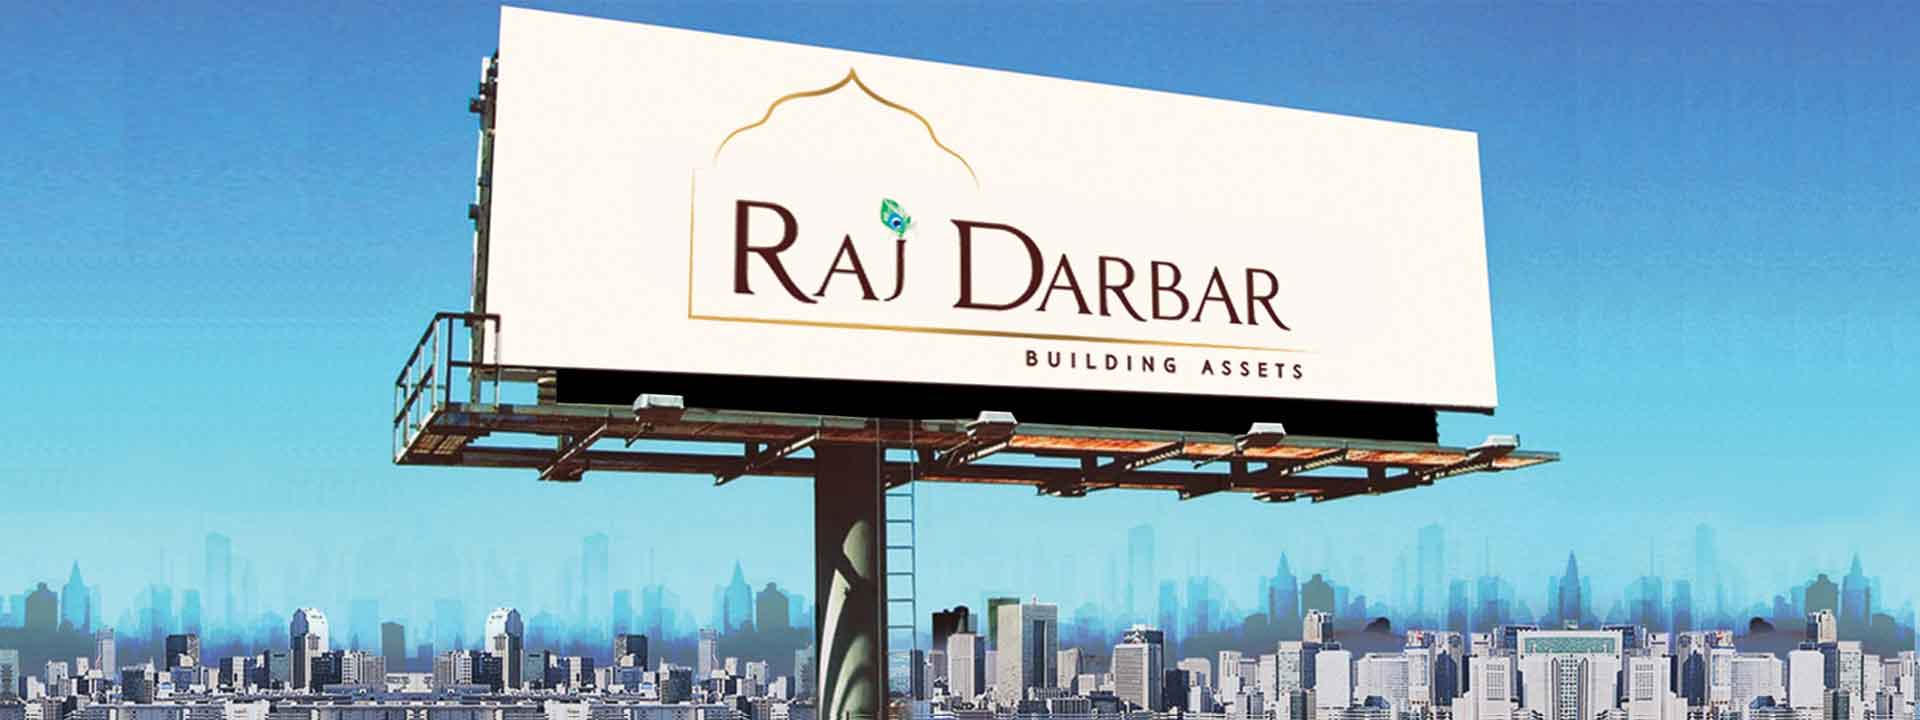 About US - Rajdarbar Realty Pvt Ltd (Formerly known as